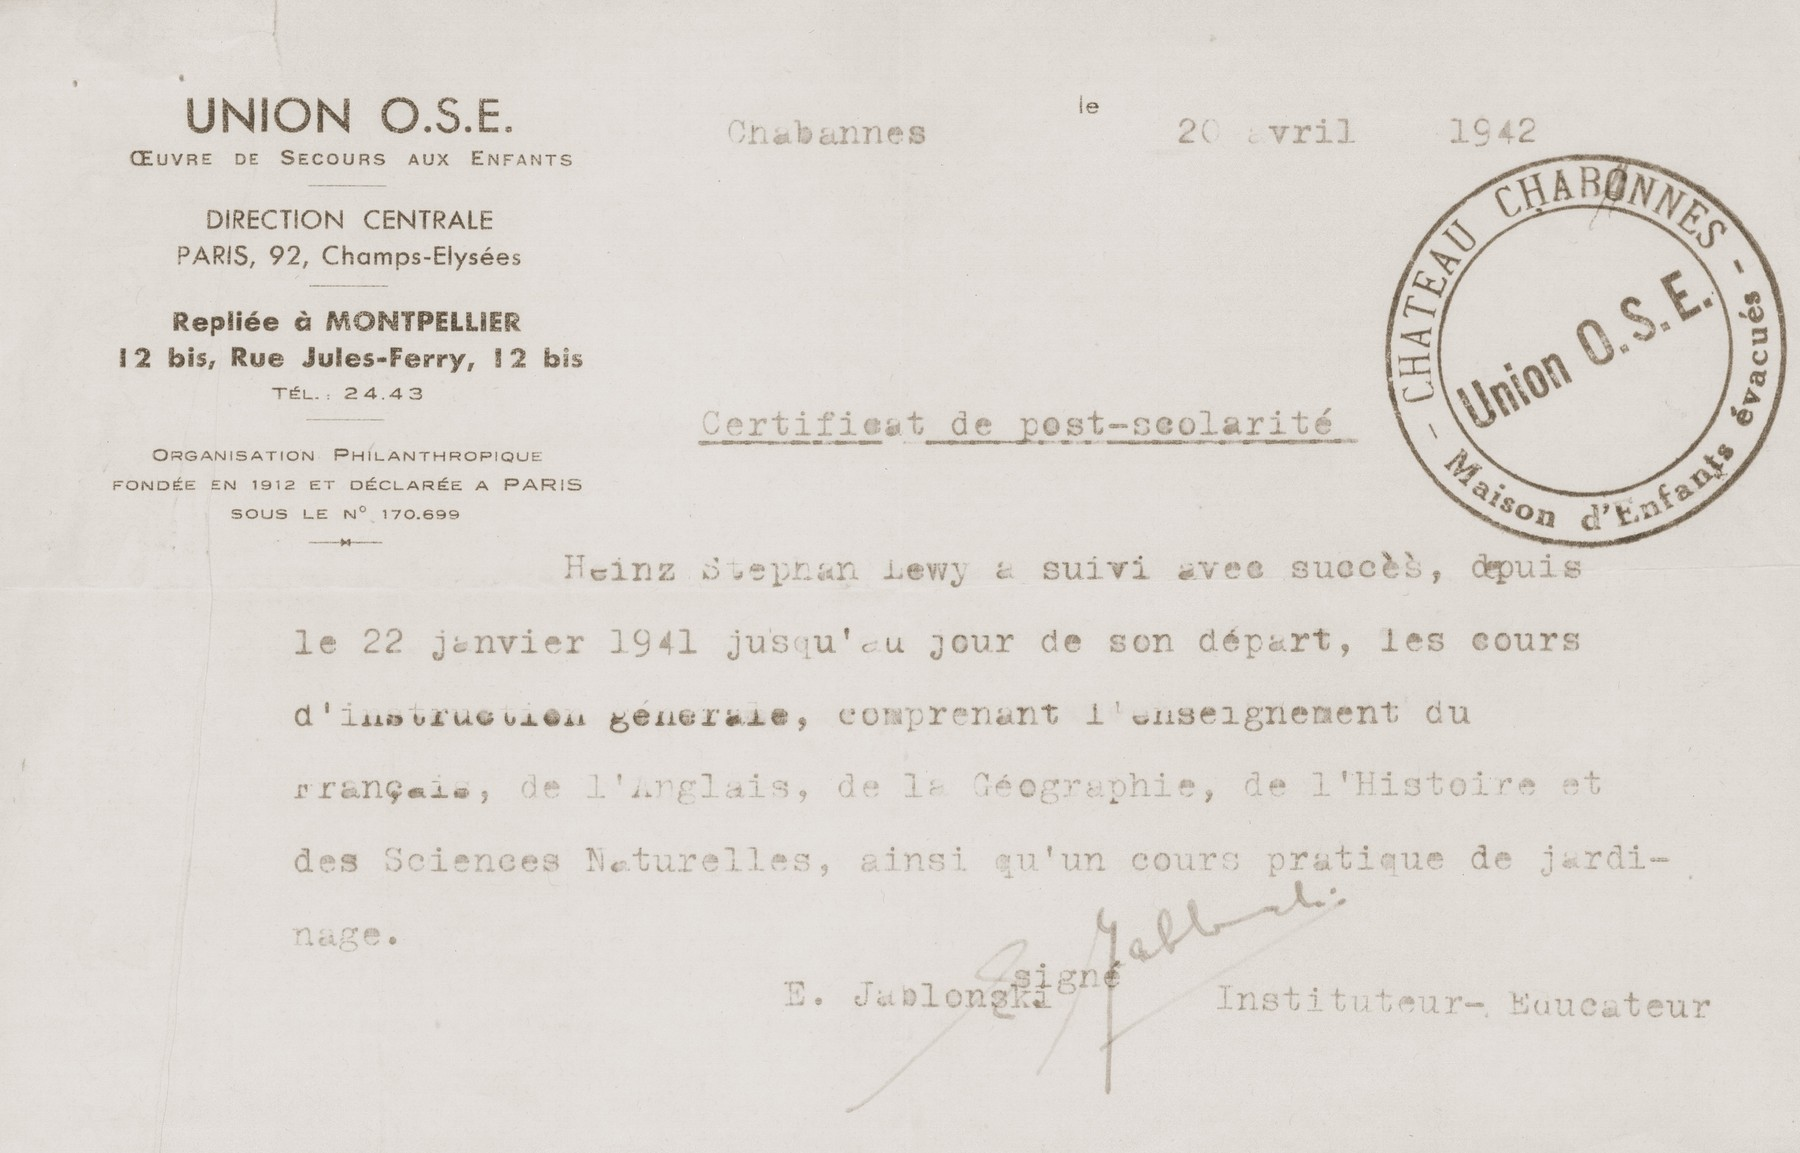 A certificate issued by the director of the Château de Chabannes children's home stating that Heinz Stephan Lewy has successfully completed his course of studies at the home.